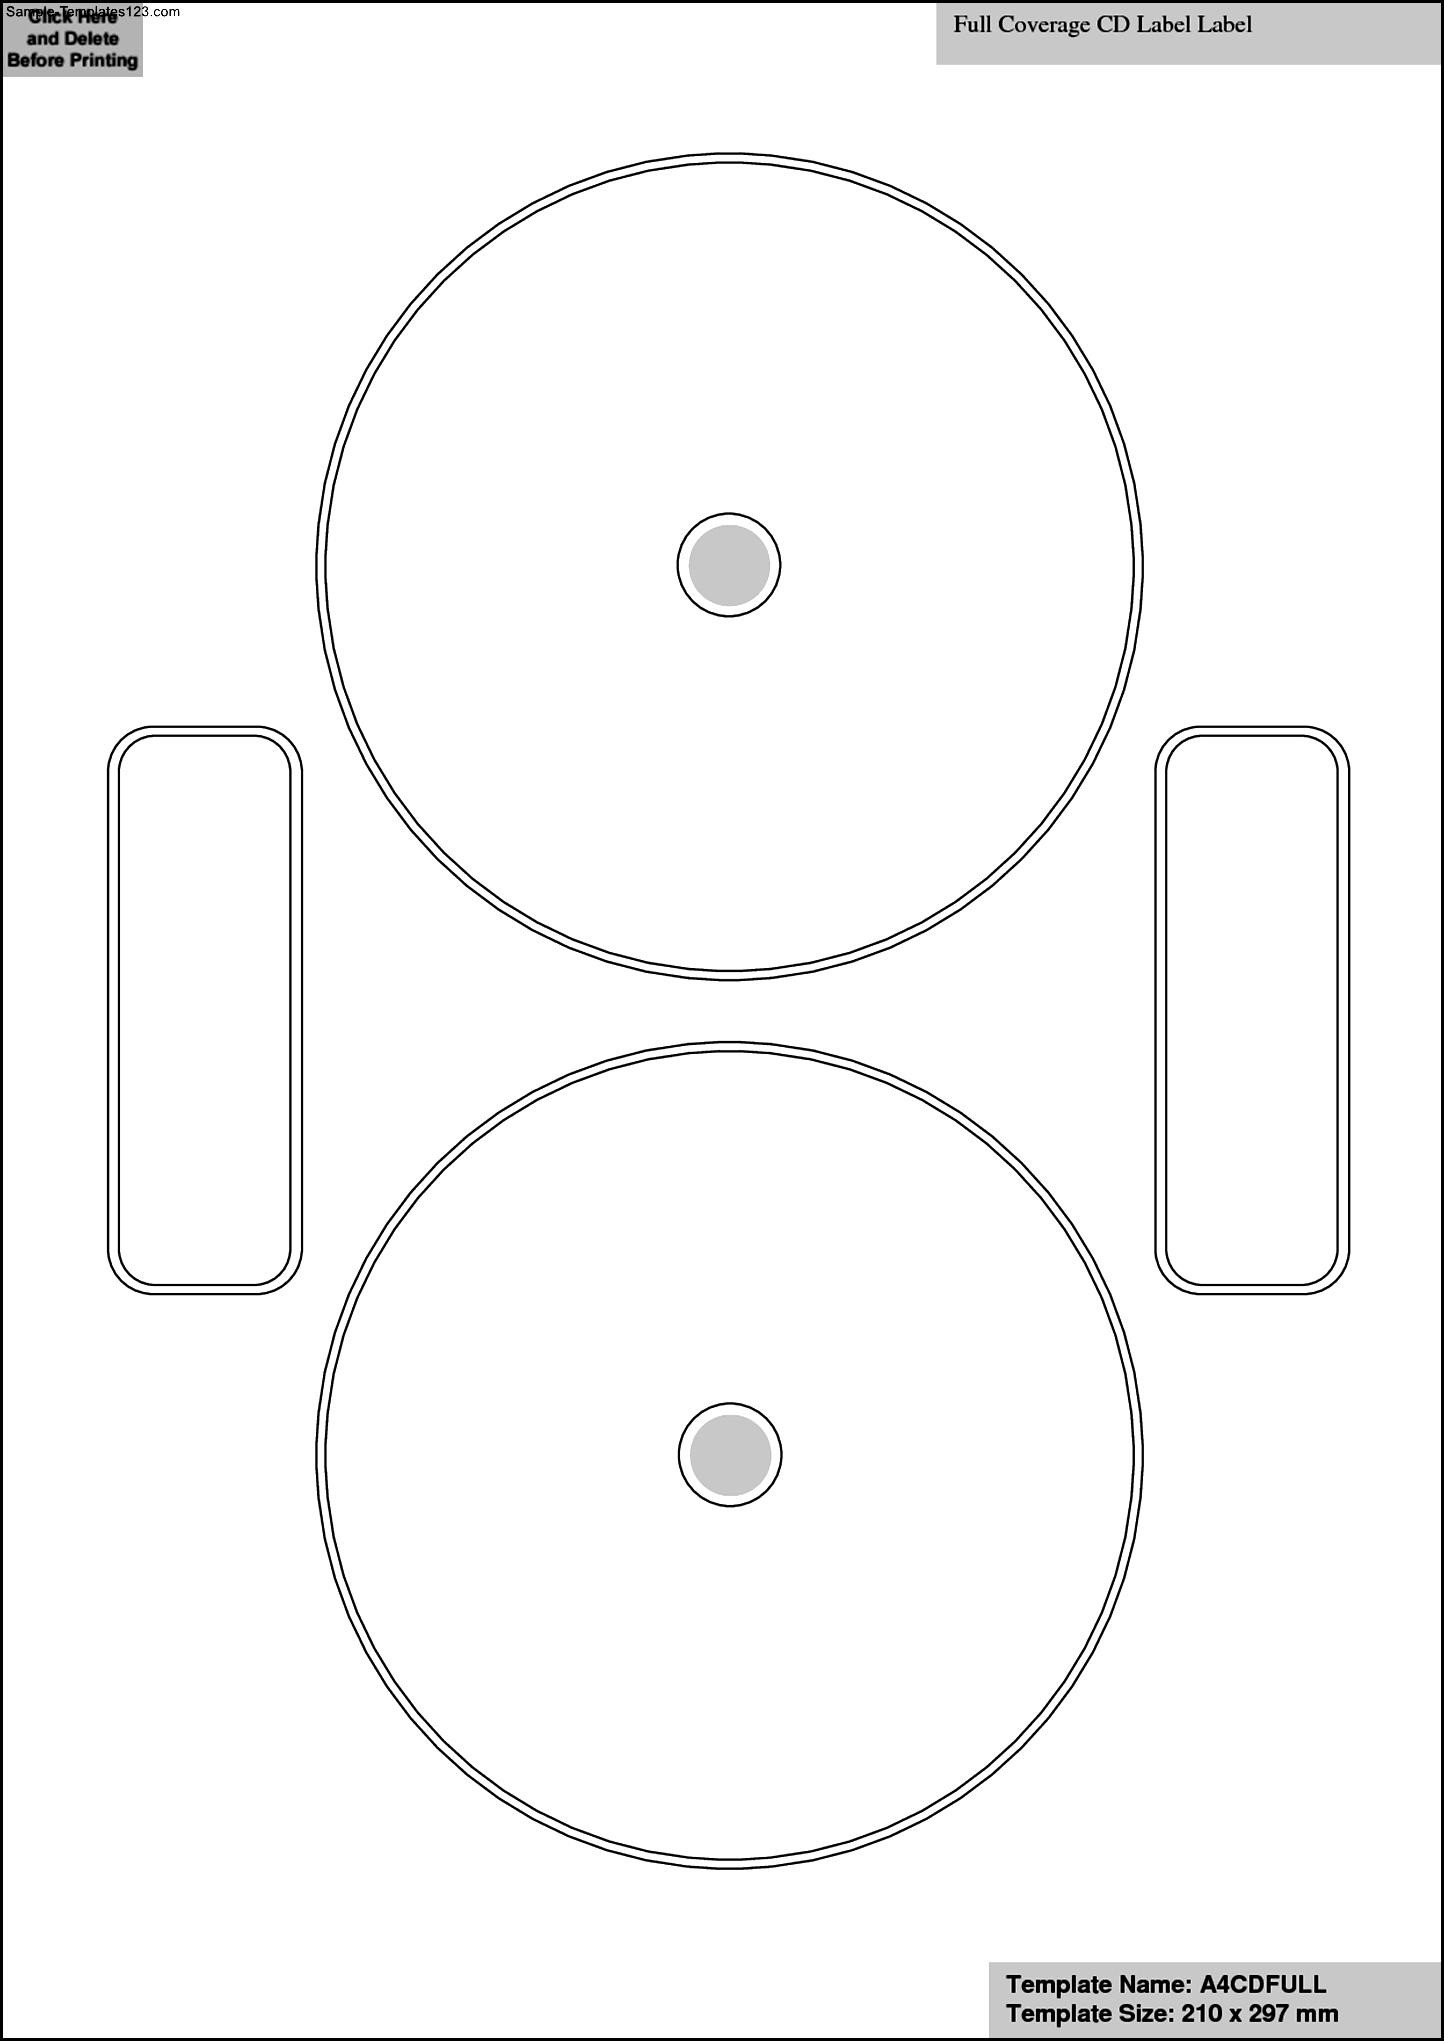 cd label templates for word - sample templates